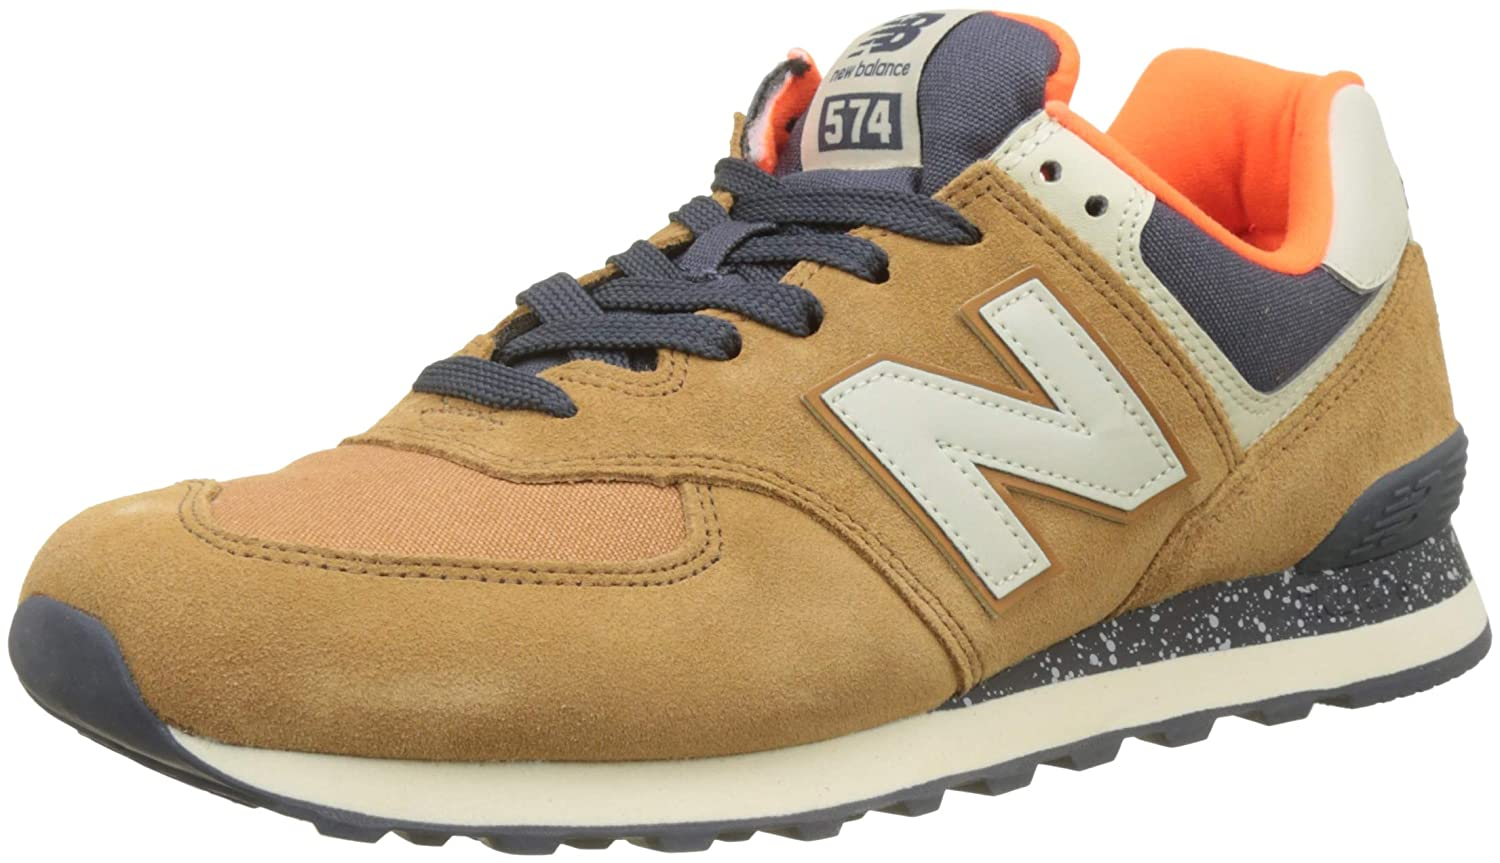 Shoes17 Uk Width Sugar 2eBrown New Balance Mens Ml574v2 5 QrsdCth